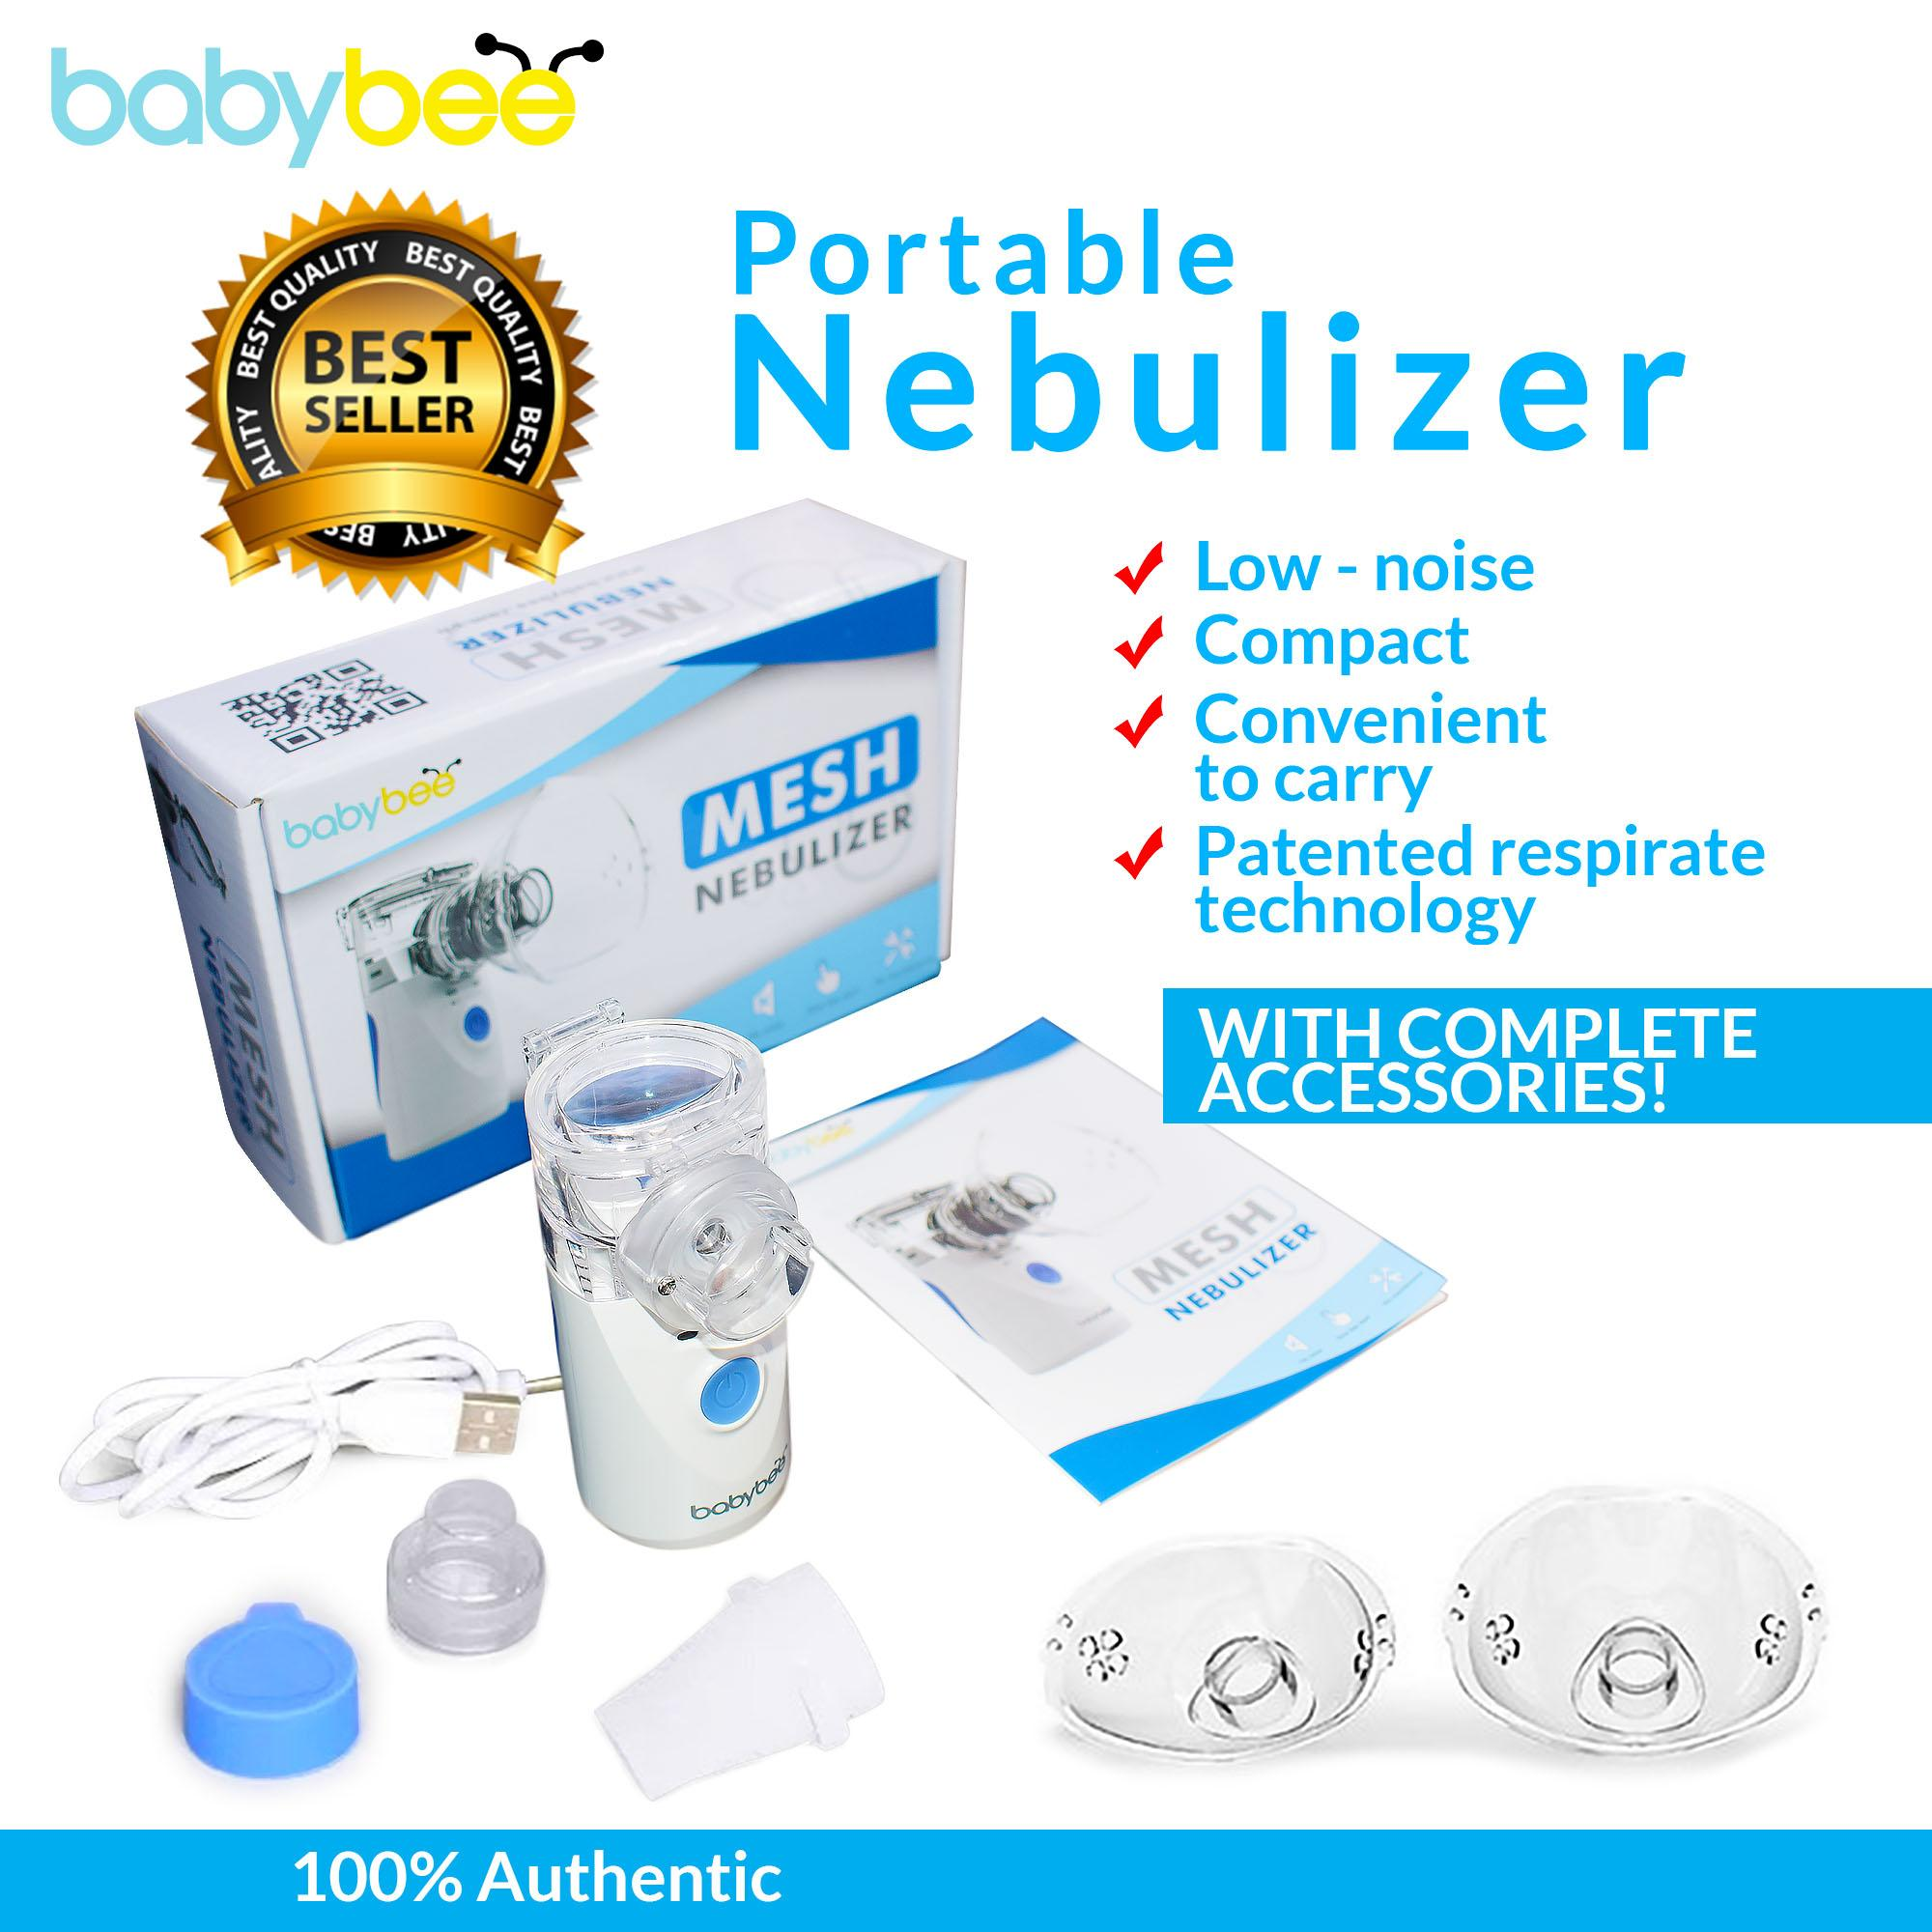 Portable Nebulizer Inhaler And Handheld Vaporizers For Kids, Adults From Babybee By Jaylin19.